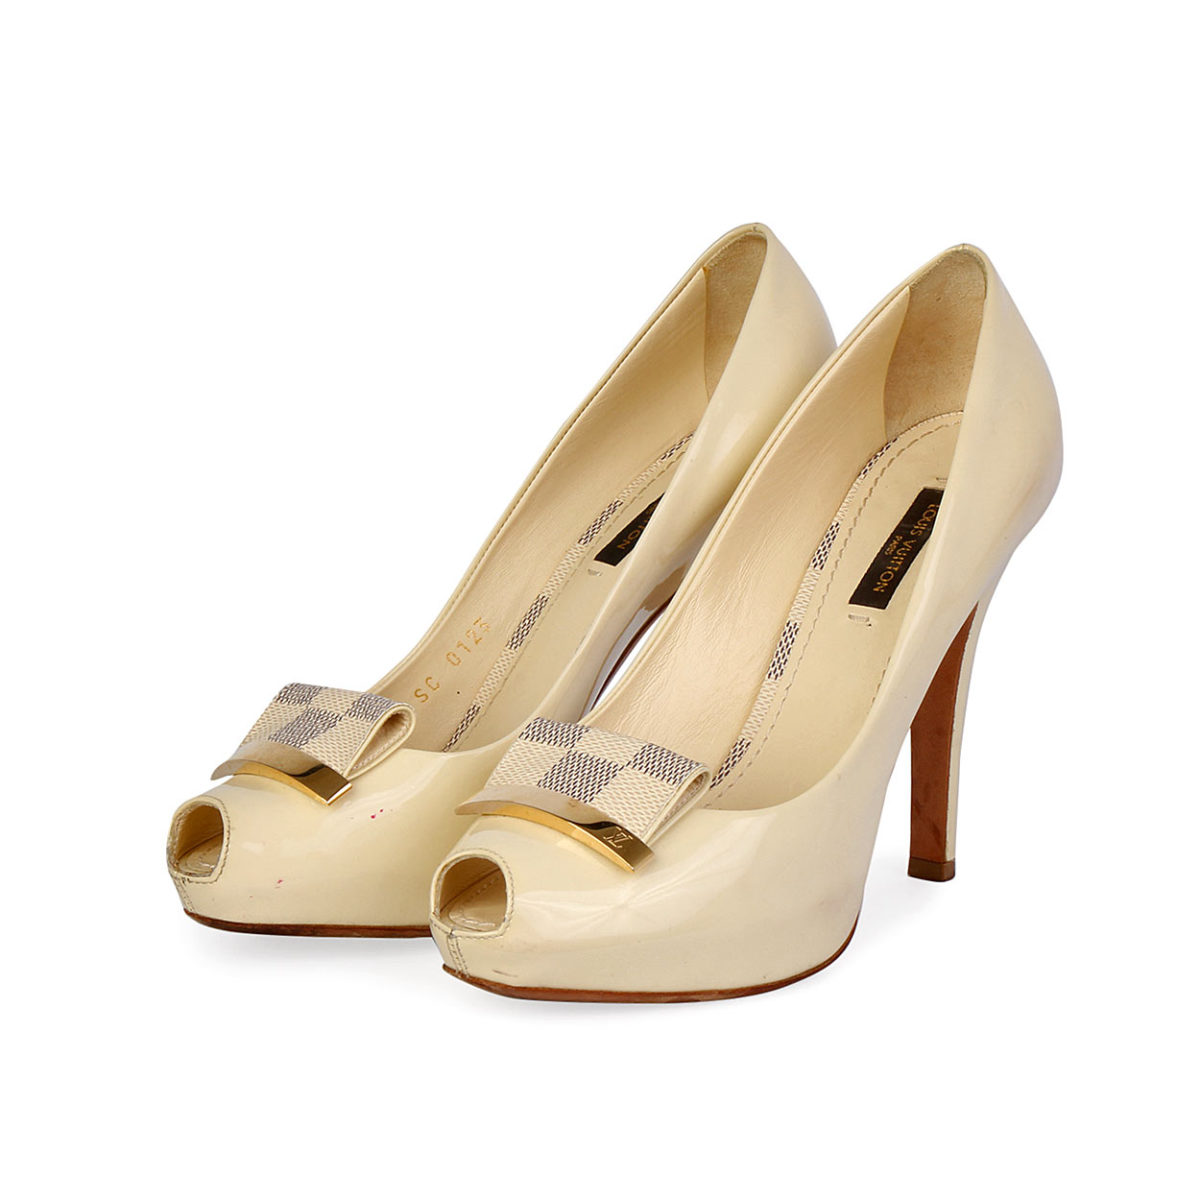 88a46e45c73 LOUIS VUITTON Patent Damier Azur Peep Toe Pumps Cream - S  36 (3.5 ...